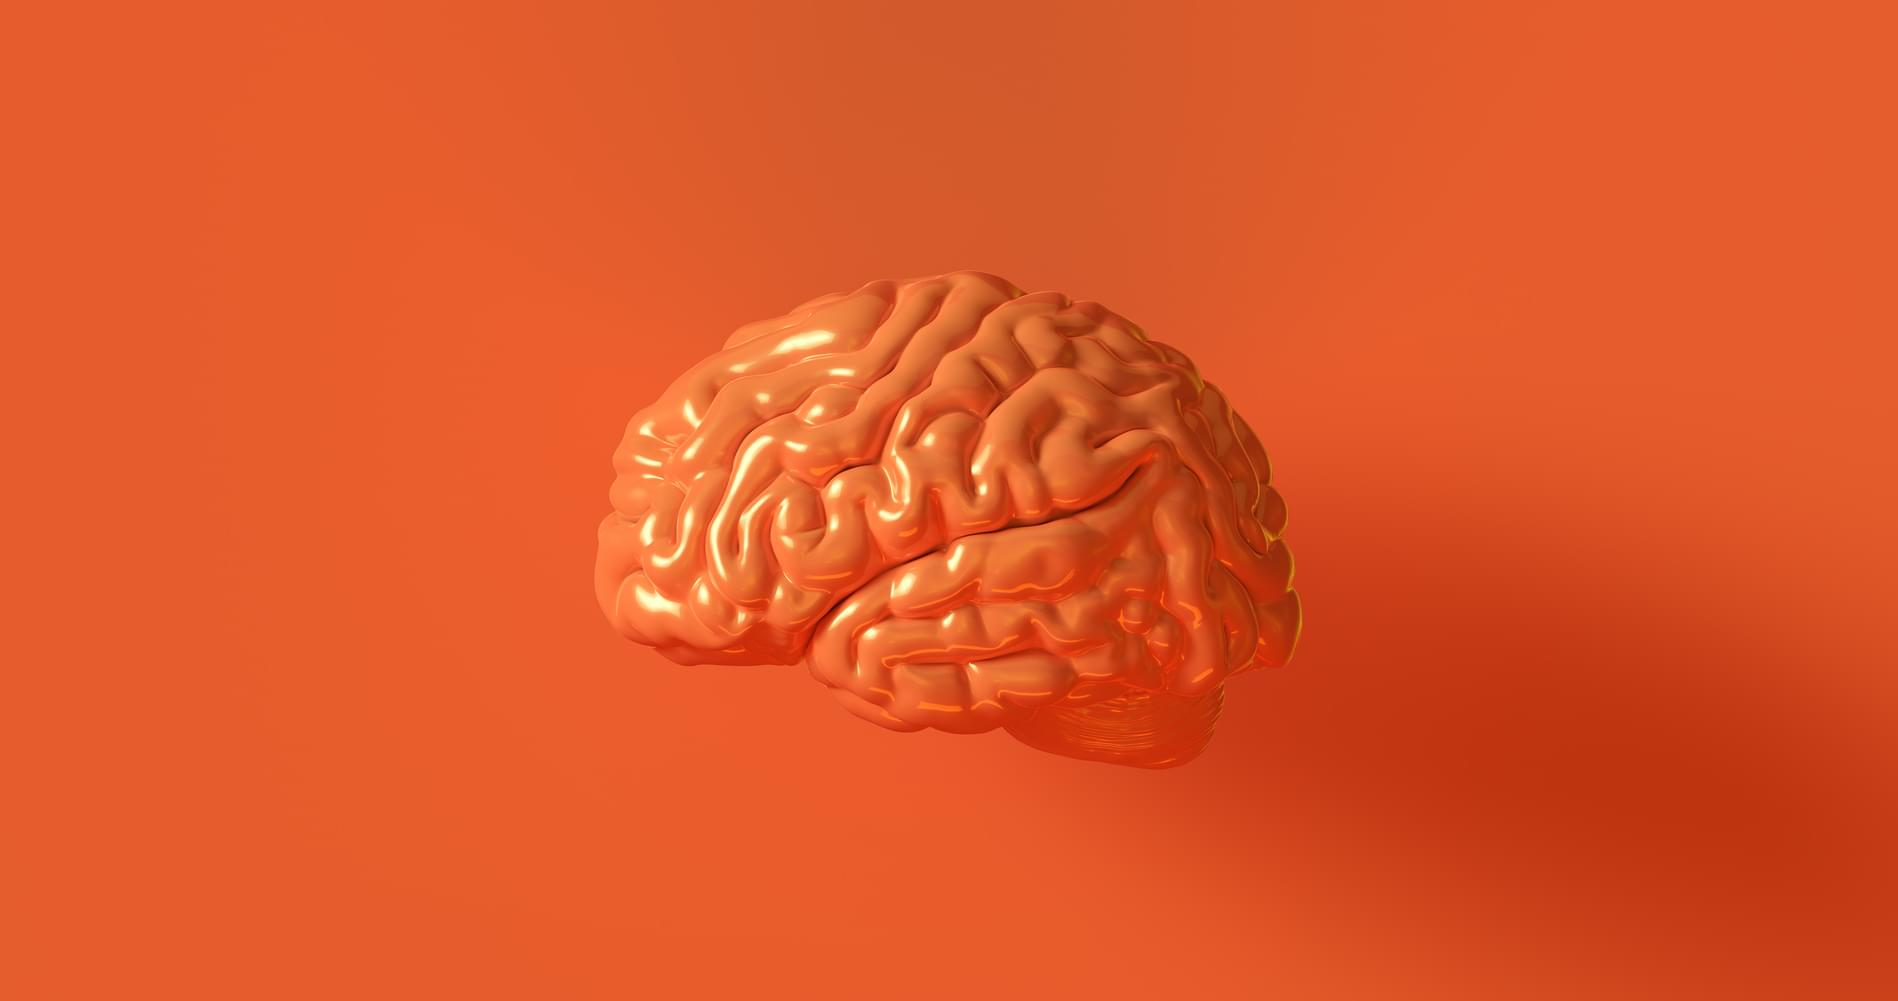 Human brain suspended in the air against an orange wall